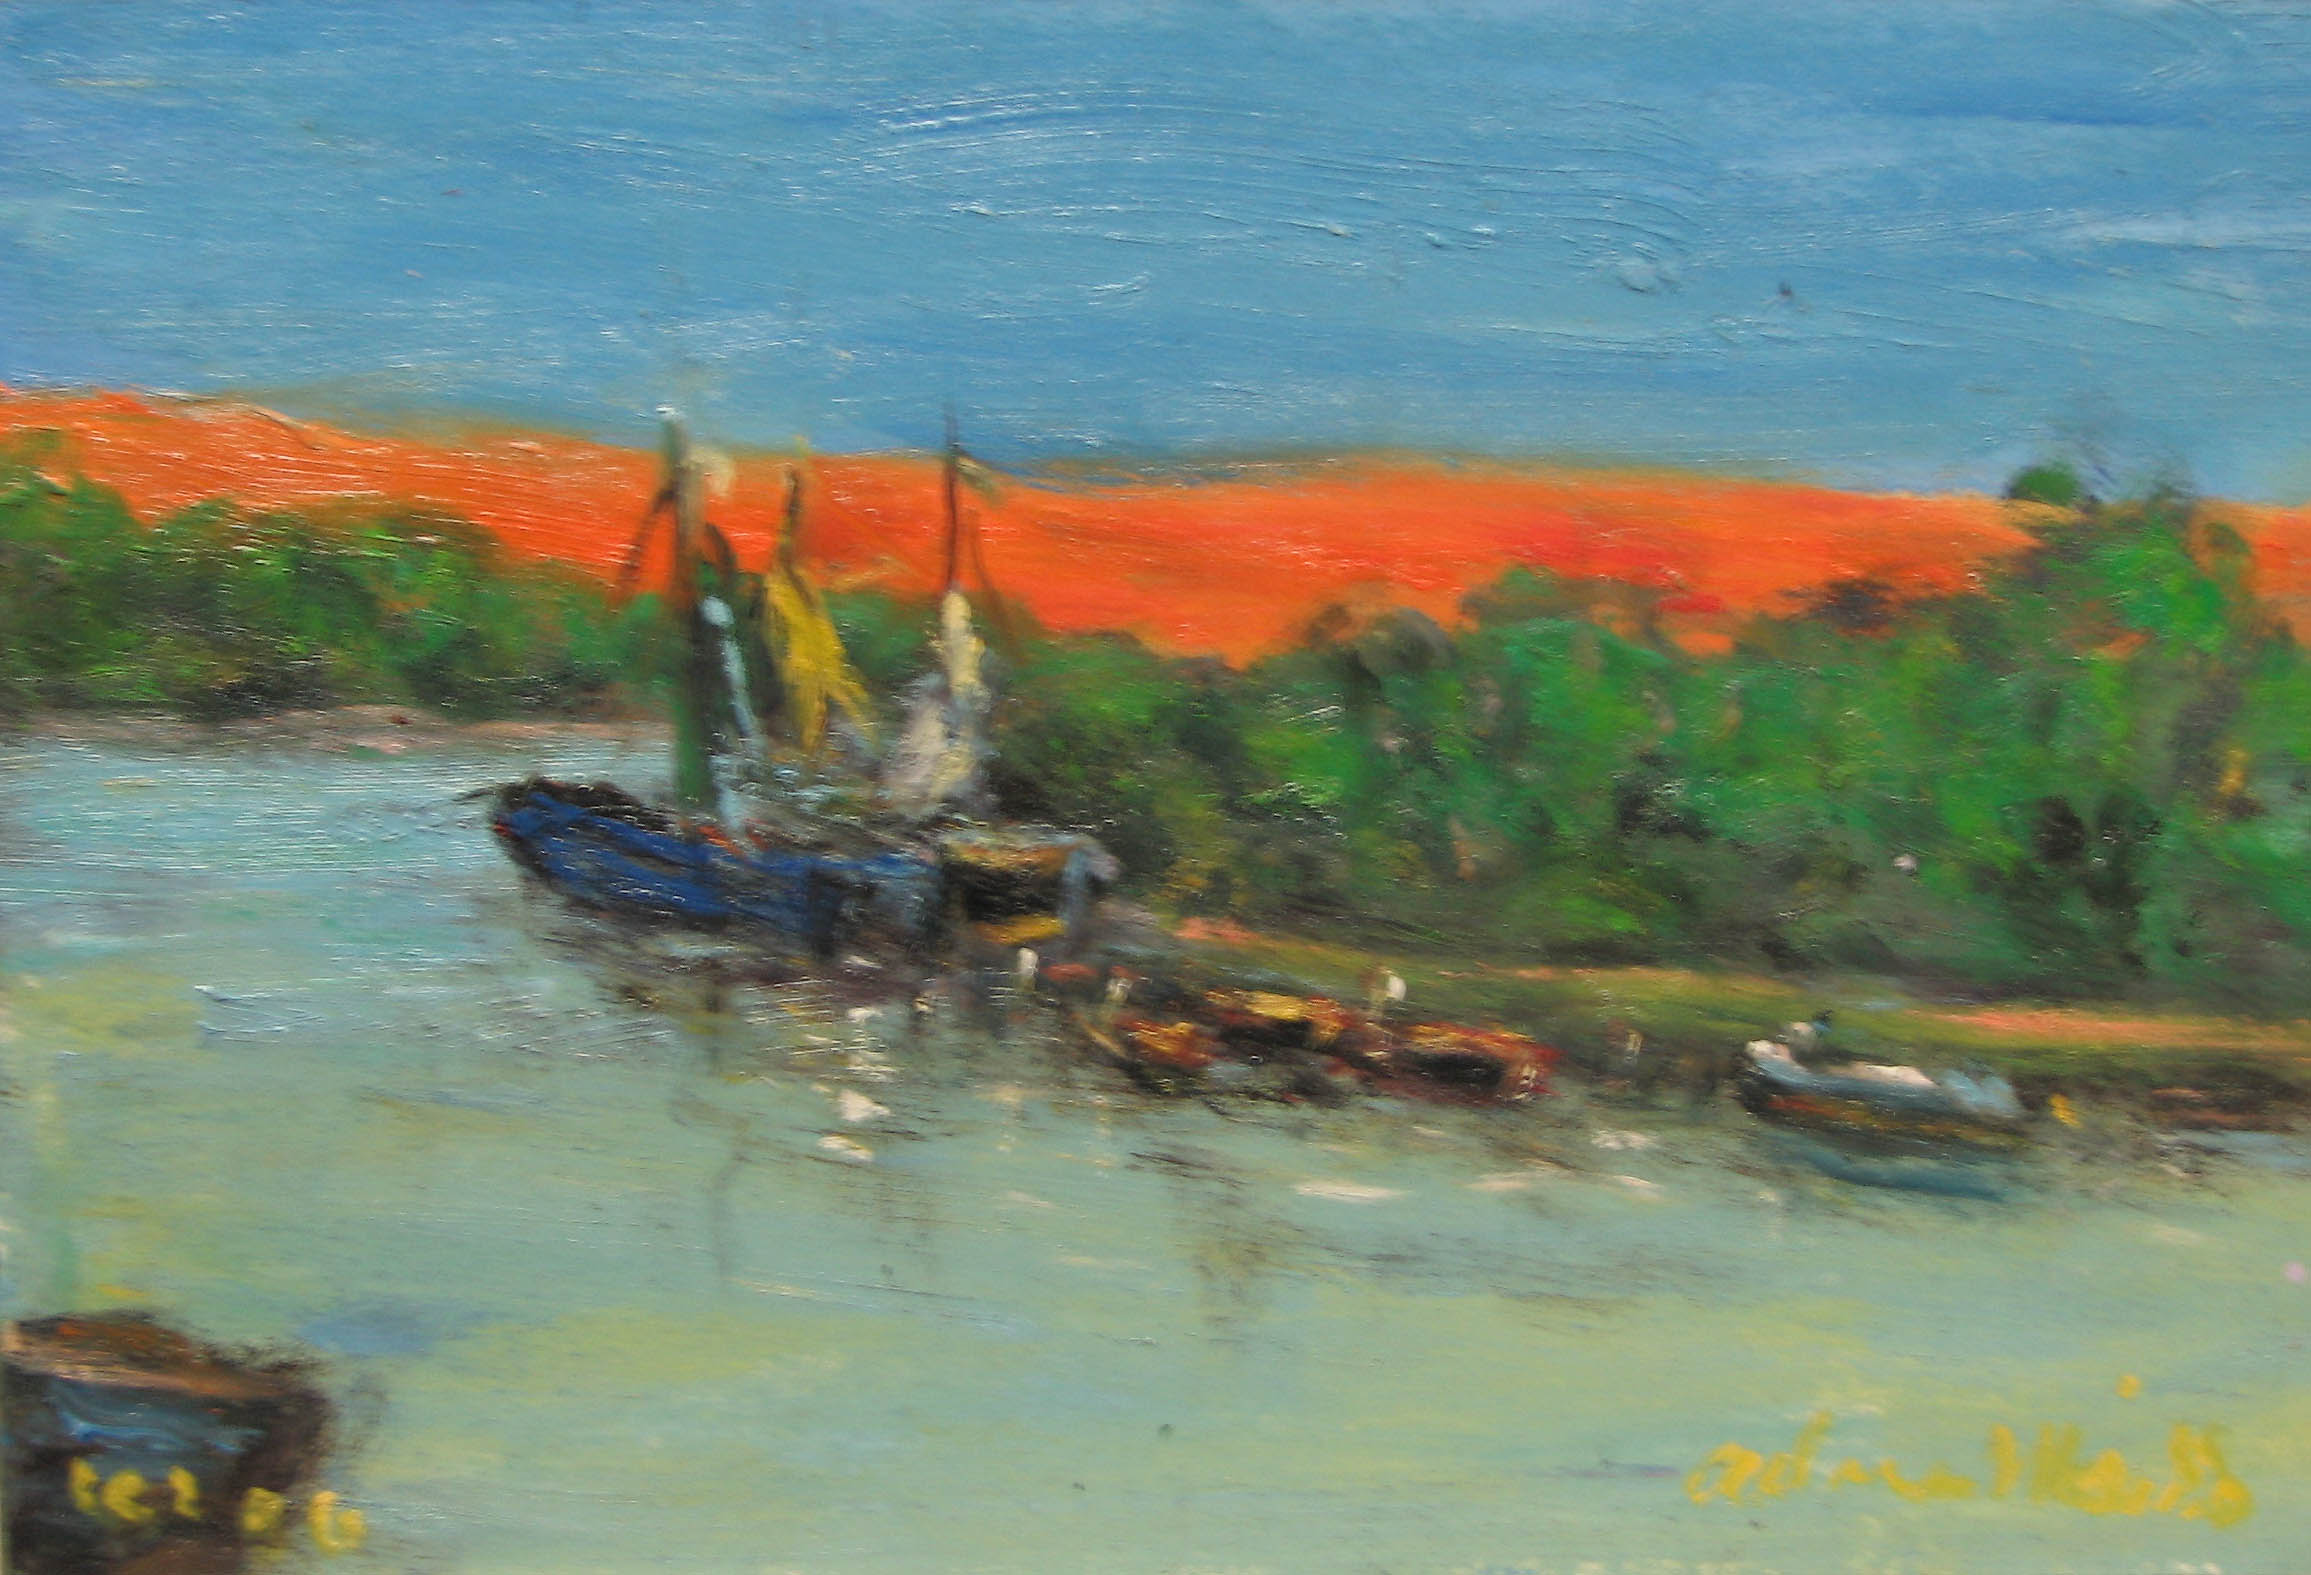 Boats by the Bank by  Andres  Morillo - Masterpiece Online